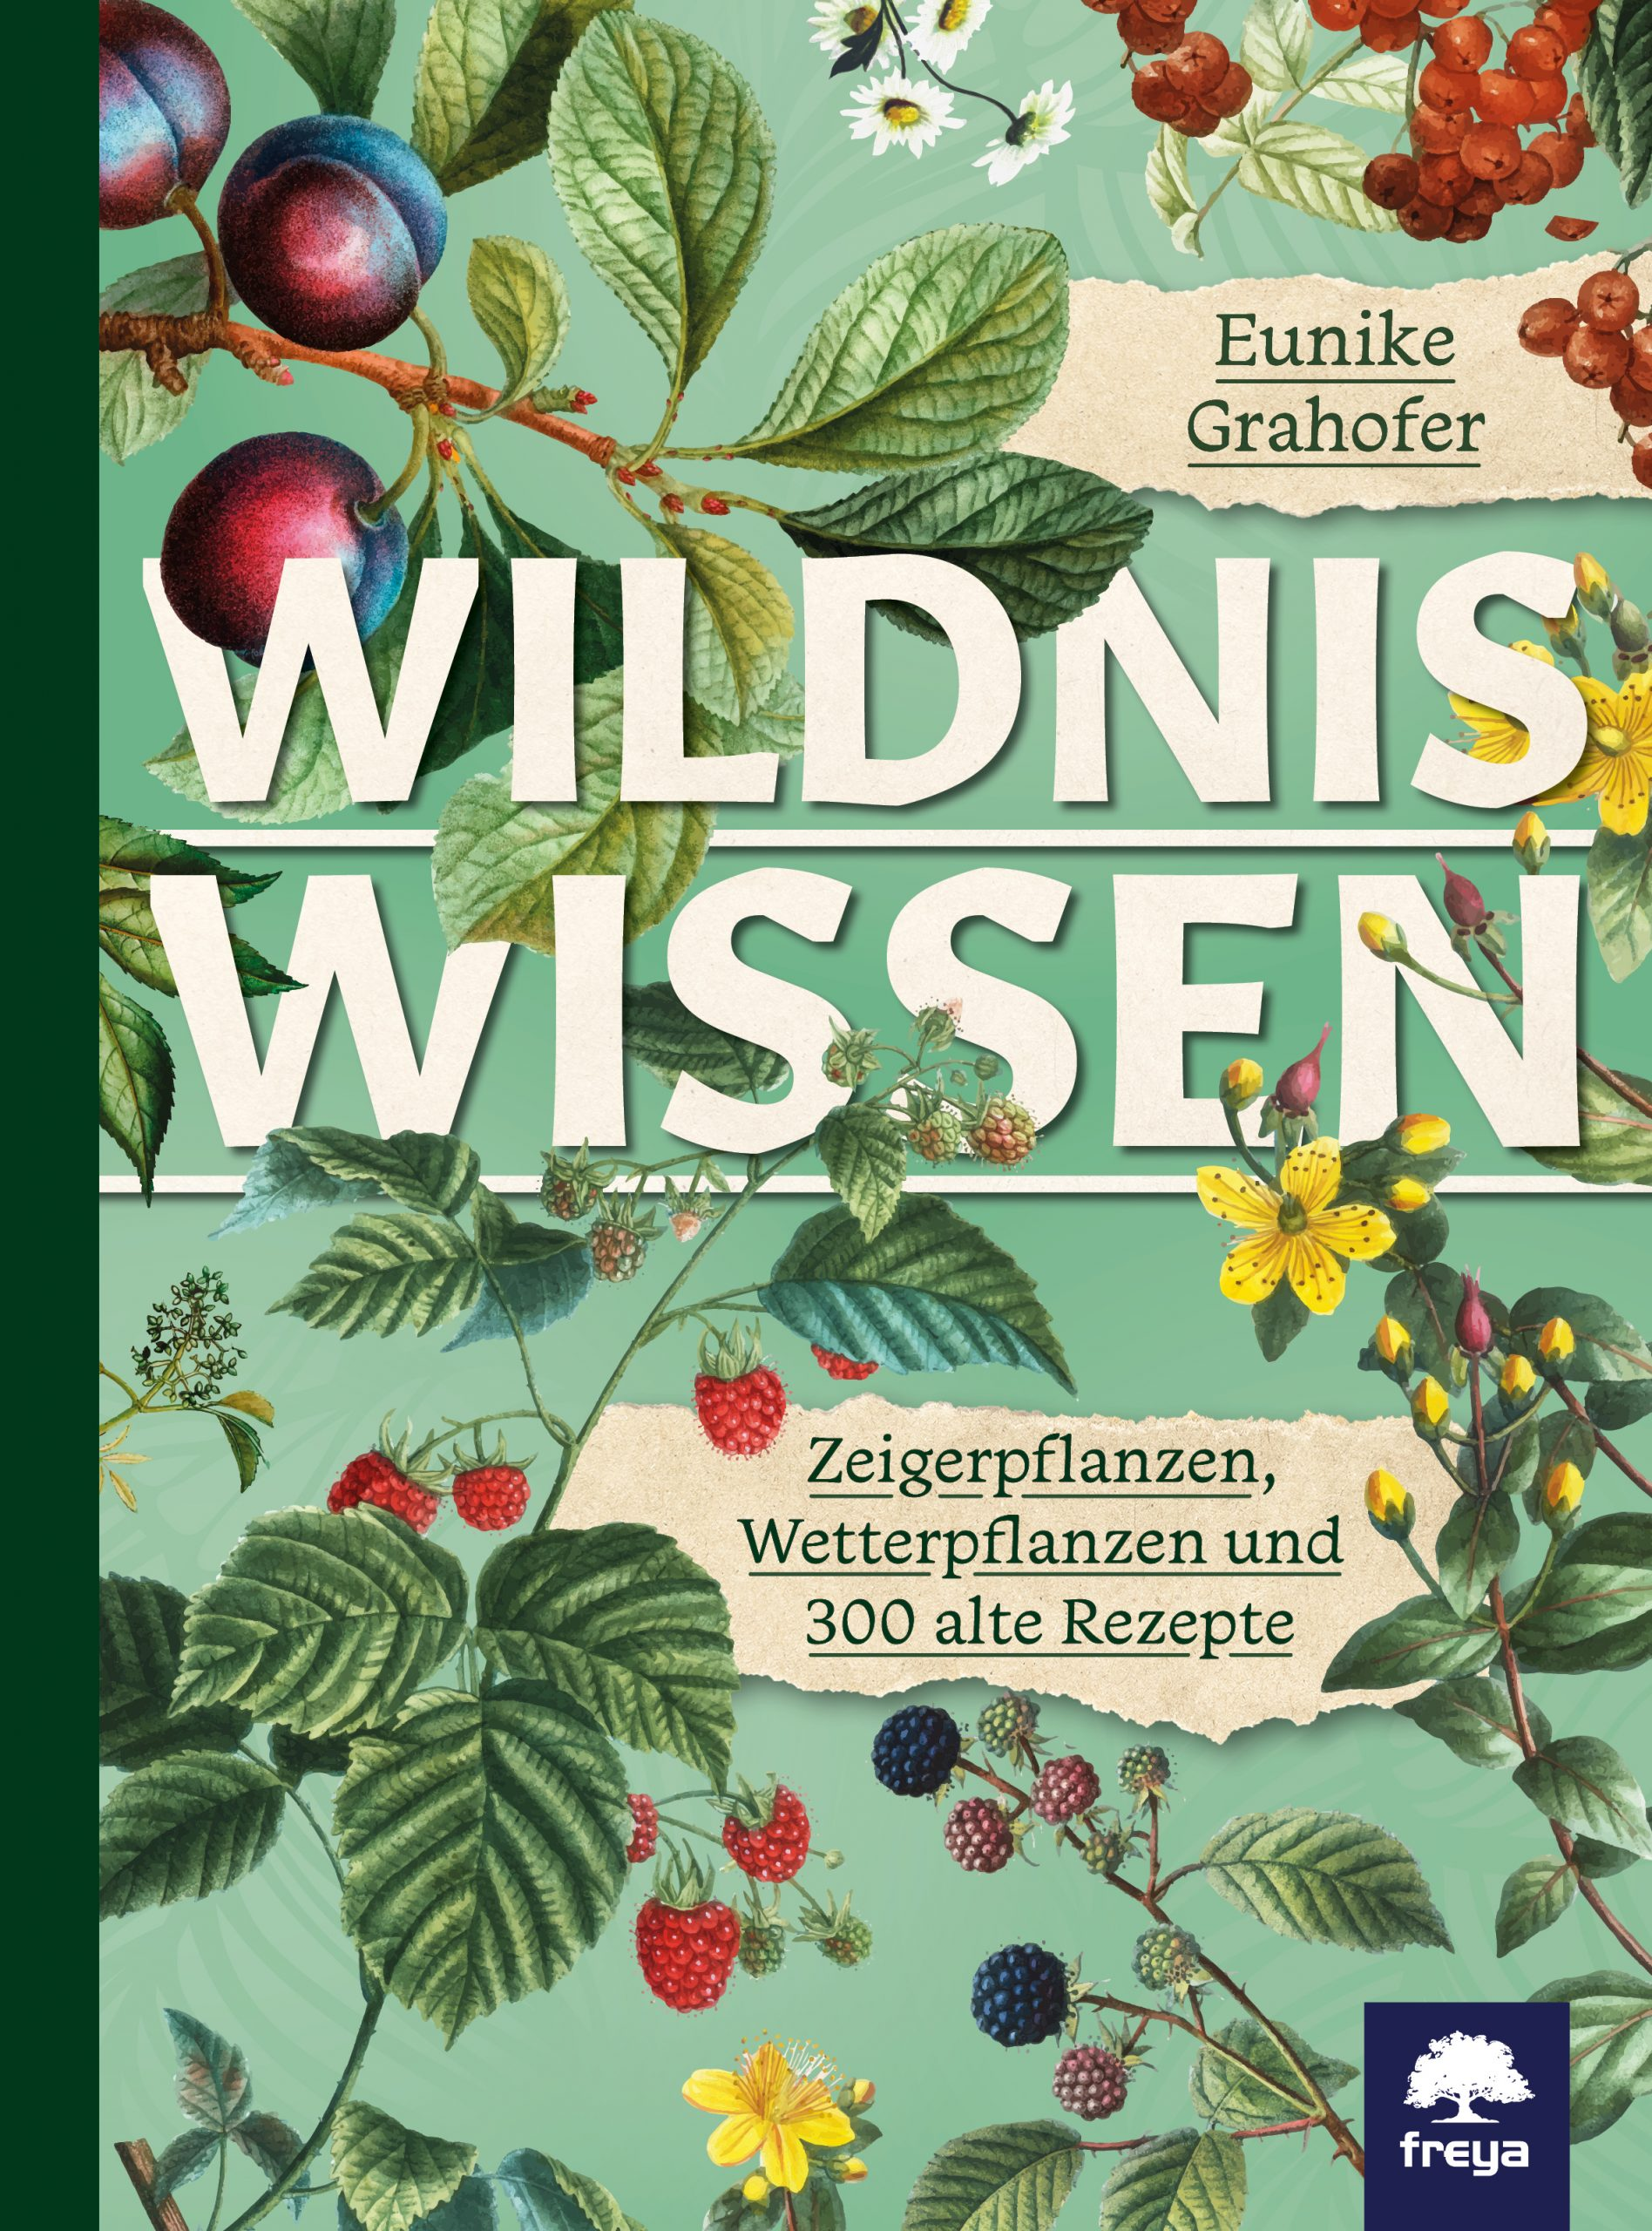 Wildniswissen - Eunike Grahofer